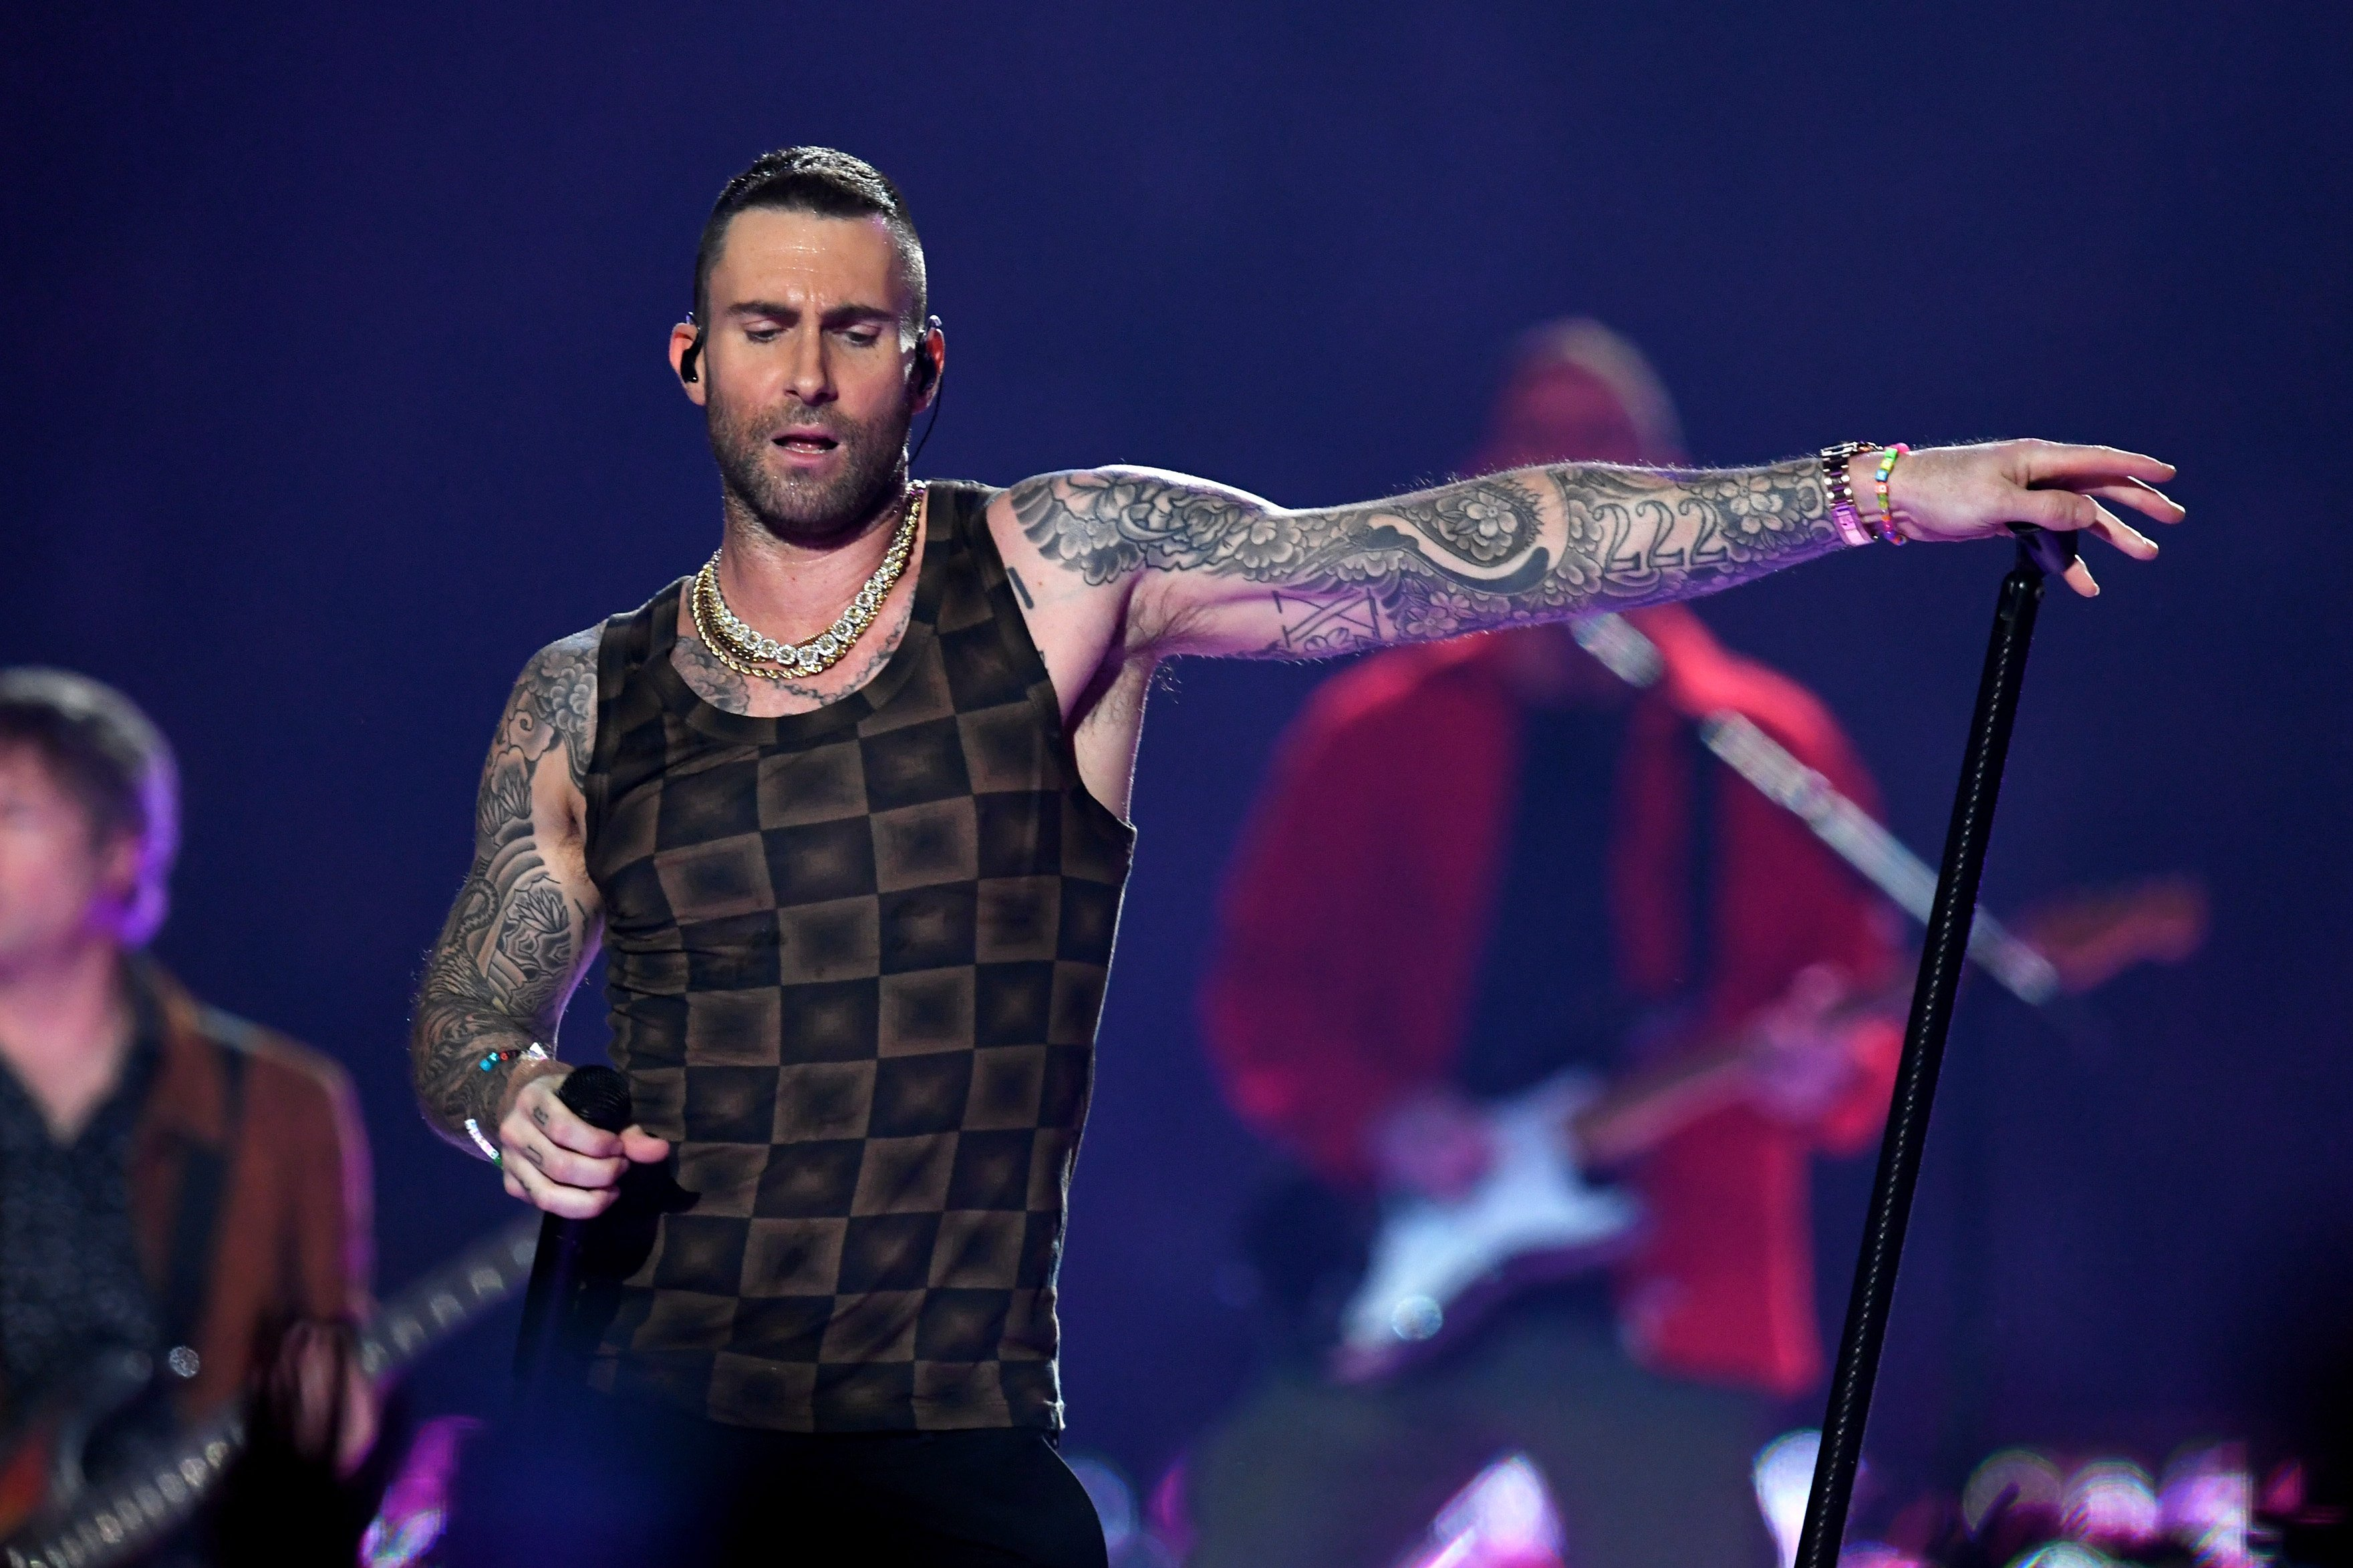 Adam Levine of Maroon 5 performing at the Super Bowl 2019 | Photo: Getty Images